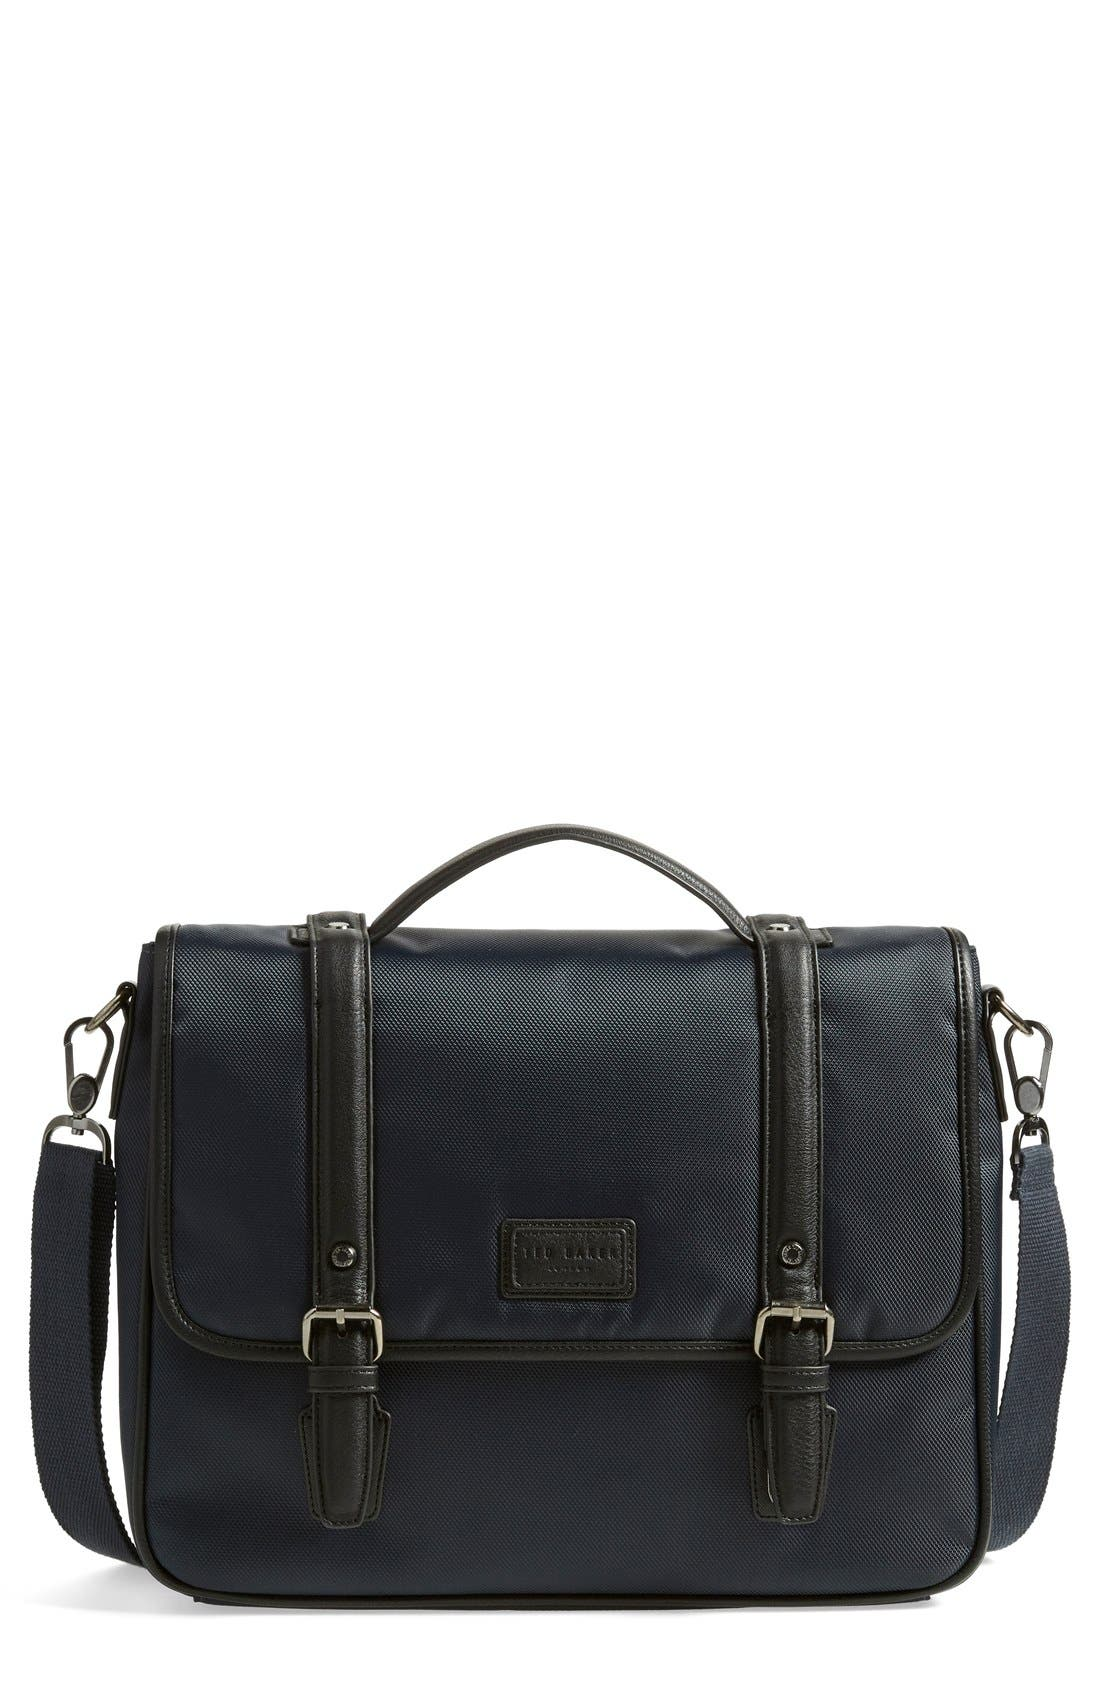 Alternate Image 1 Selected - Ted Baker London 'Rooks' Messenger Bag